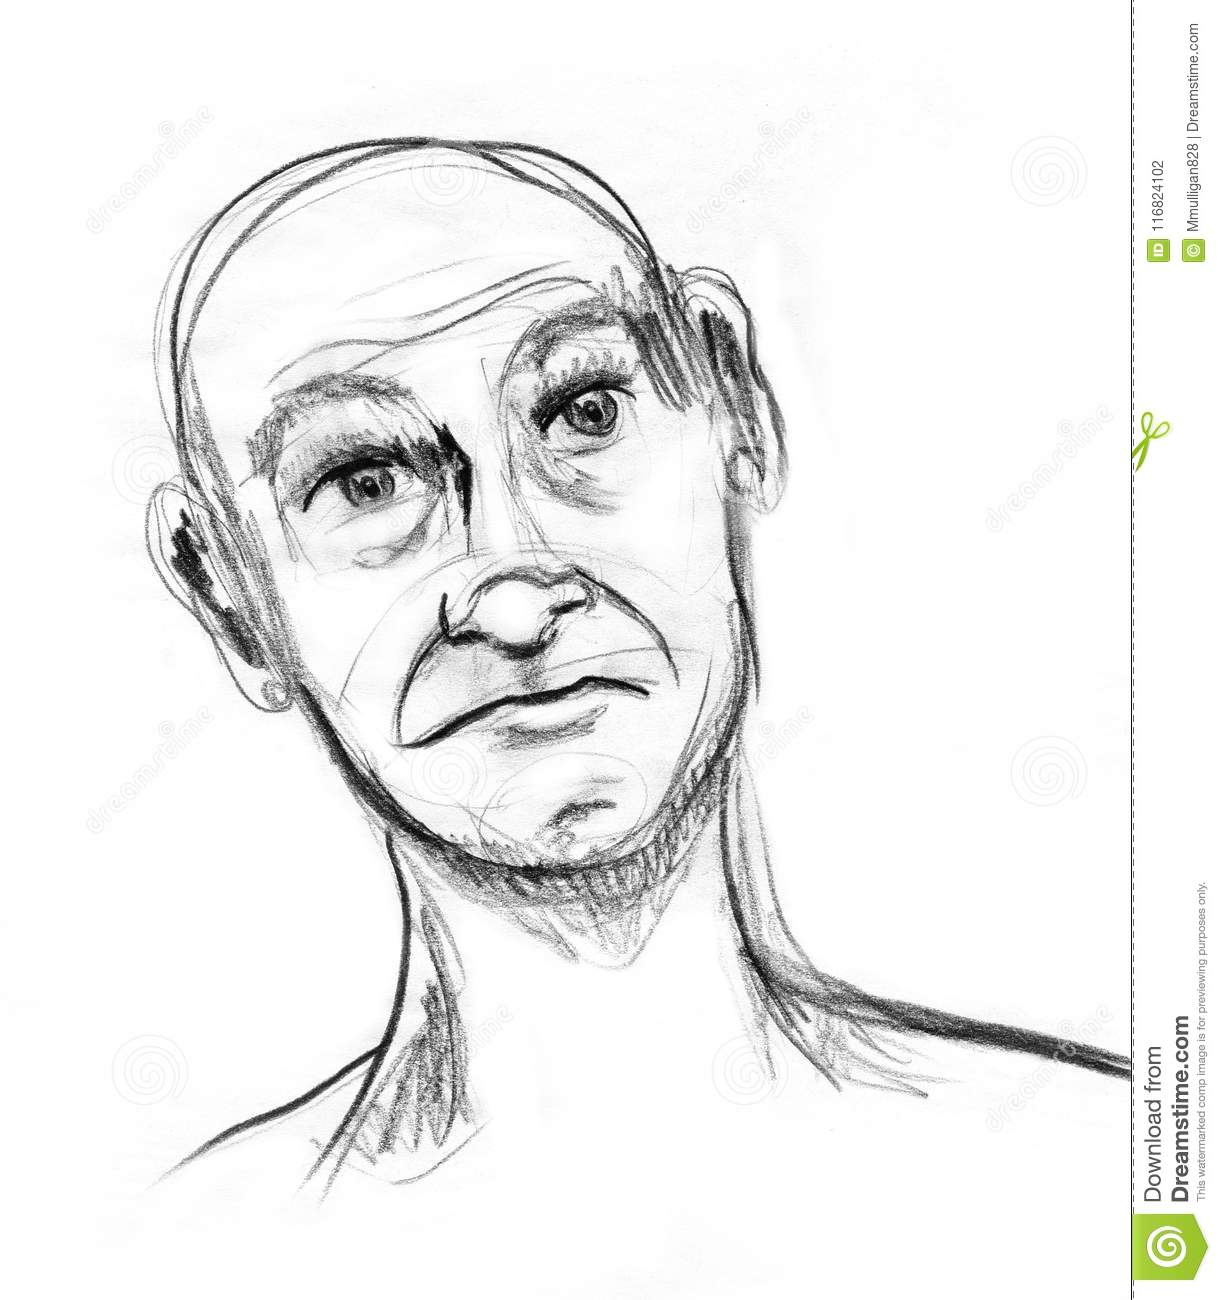 A charcoal sketch on white paper of an older gentleman with an animated expression